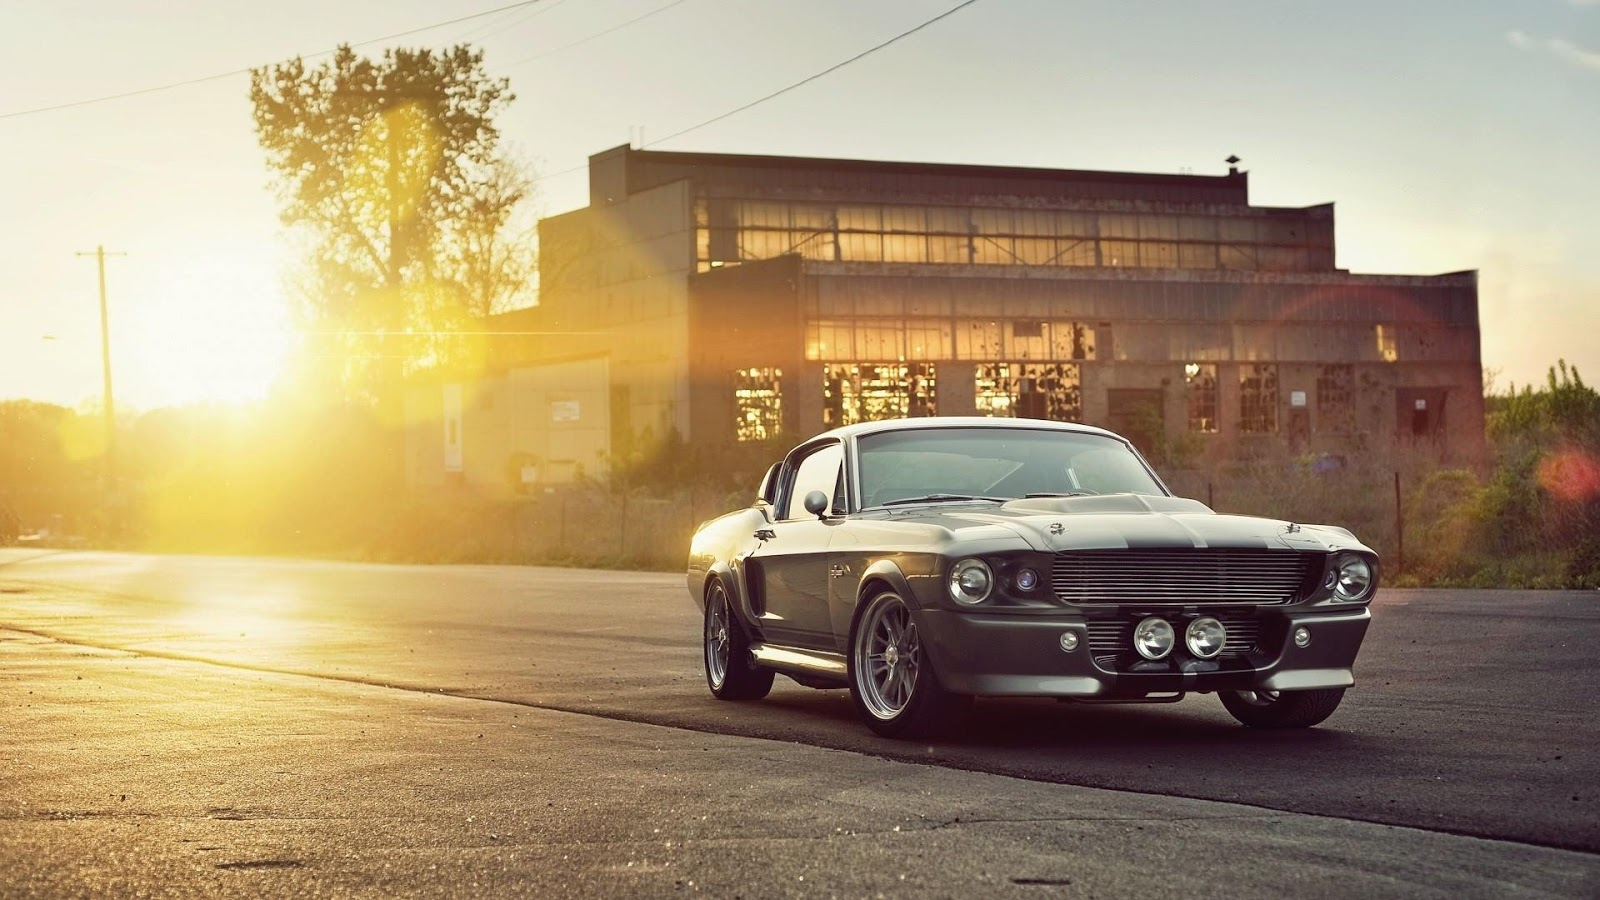 American Muscle Car Wallpaper